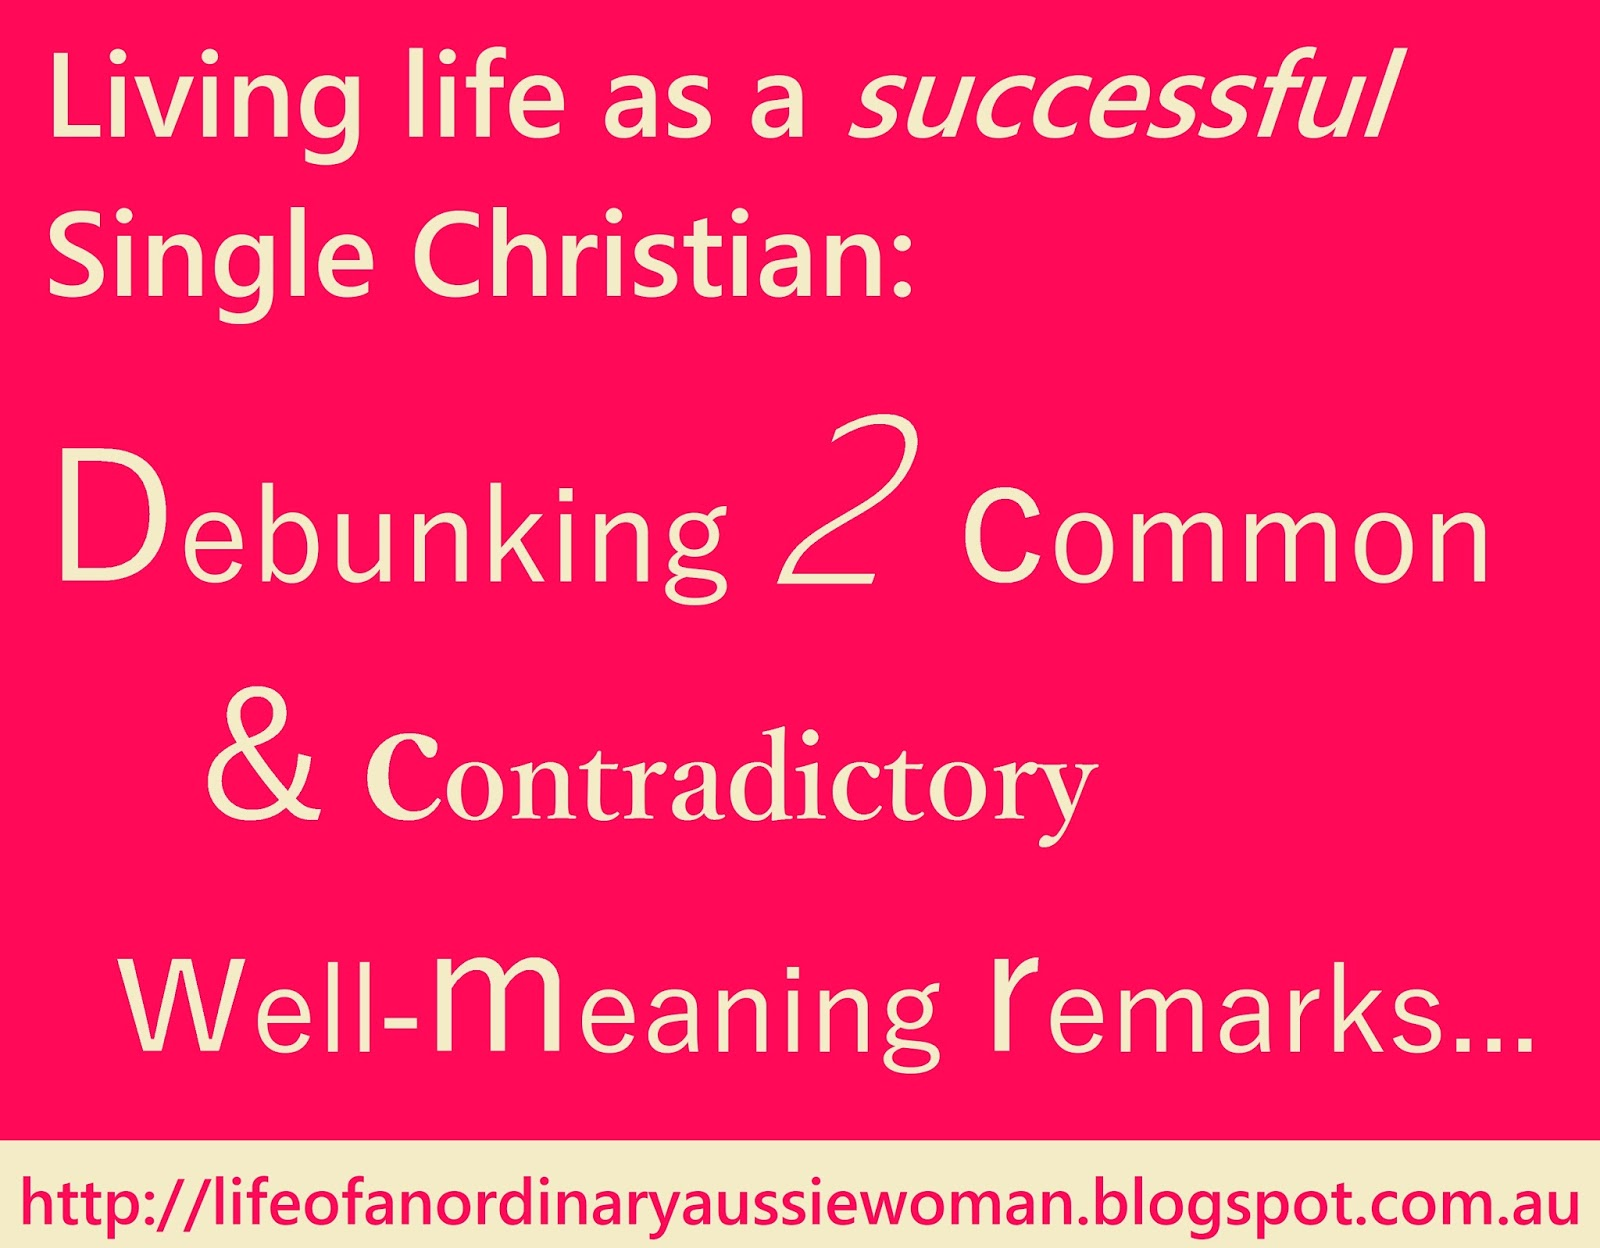 success christian singles Christian dating site to connect with other christian singles online start your free trial to chat with your perfect match christian-owned since 1999.